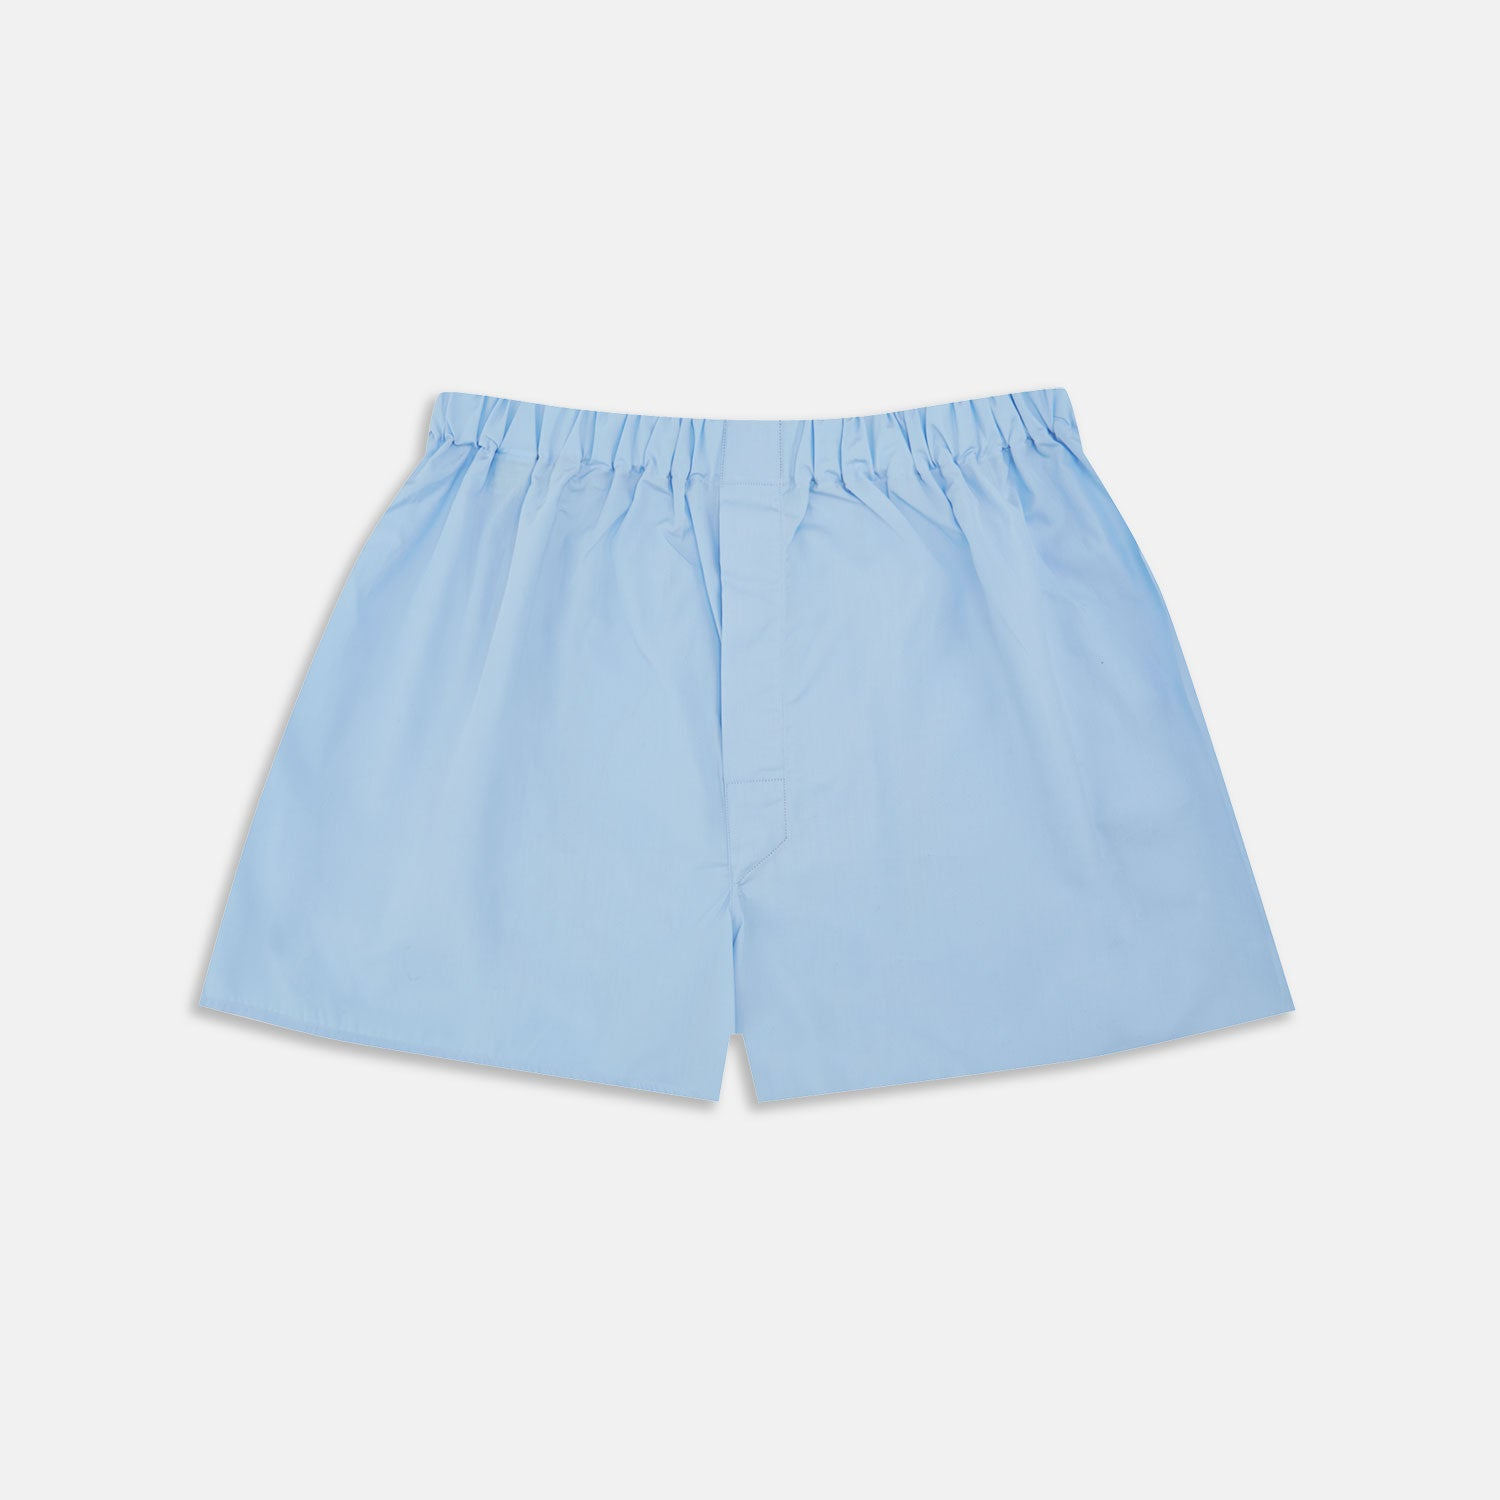 Plain Light Blue Cotton Boxer Shorts